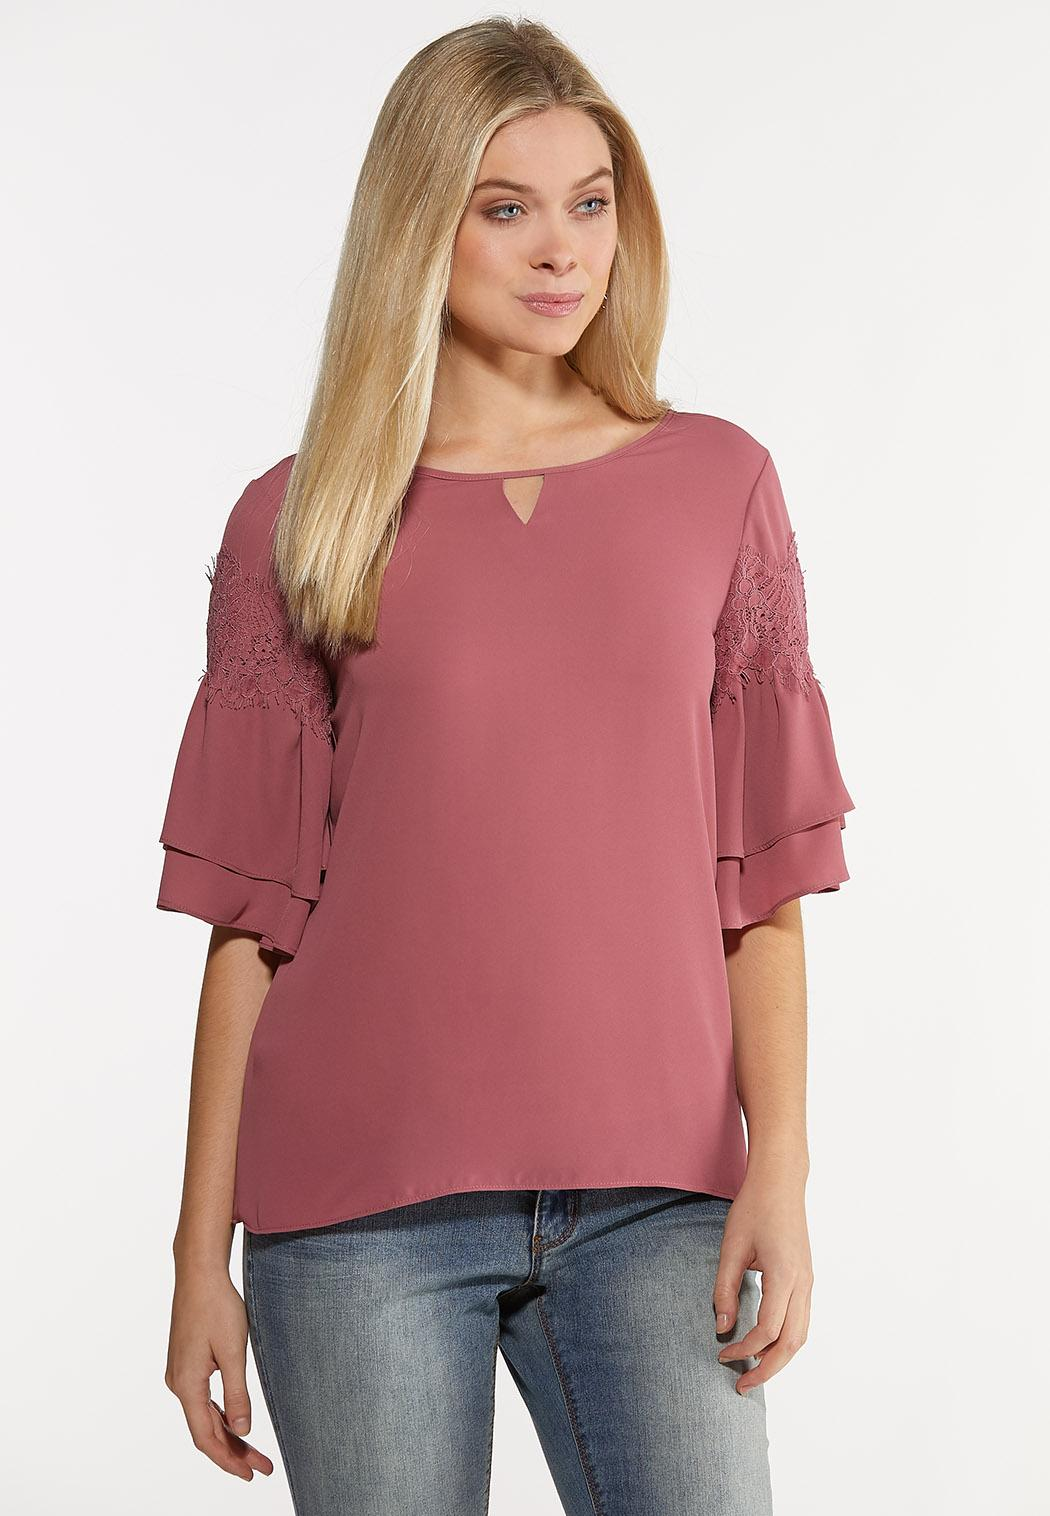 Ruffled Lace Sleeve Top